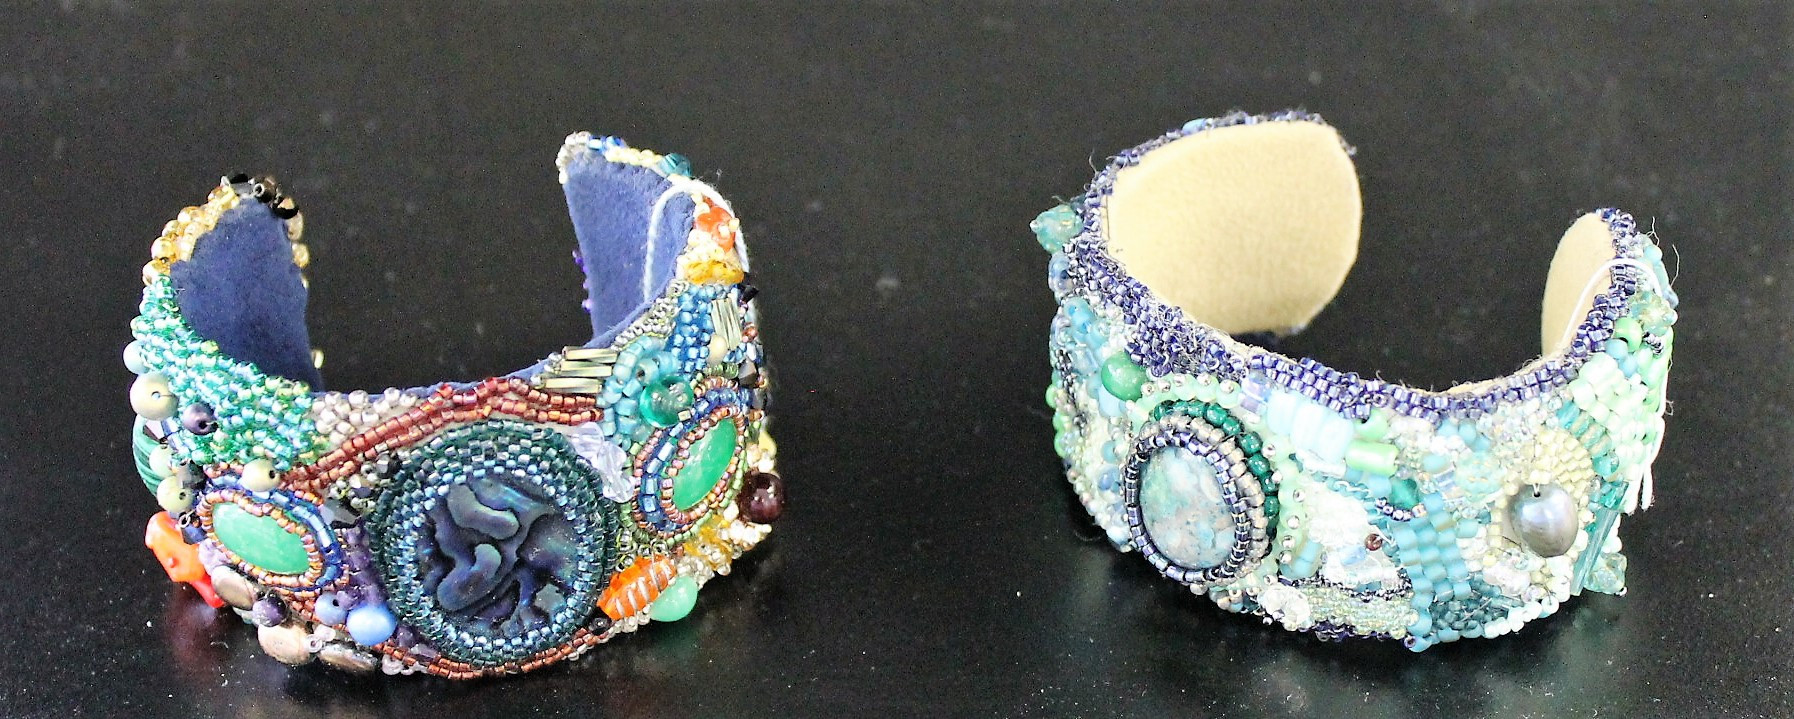 One-of-a-Kind Hand-Beaded Cuffs